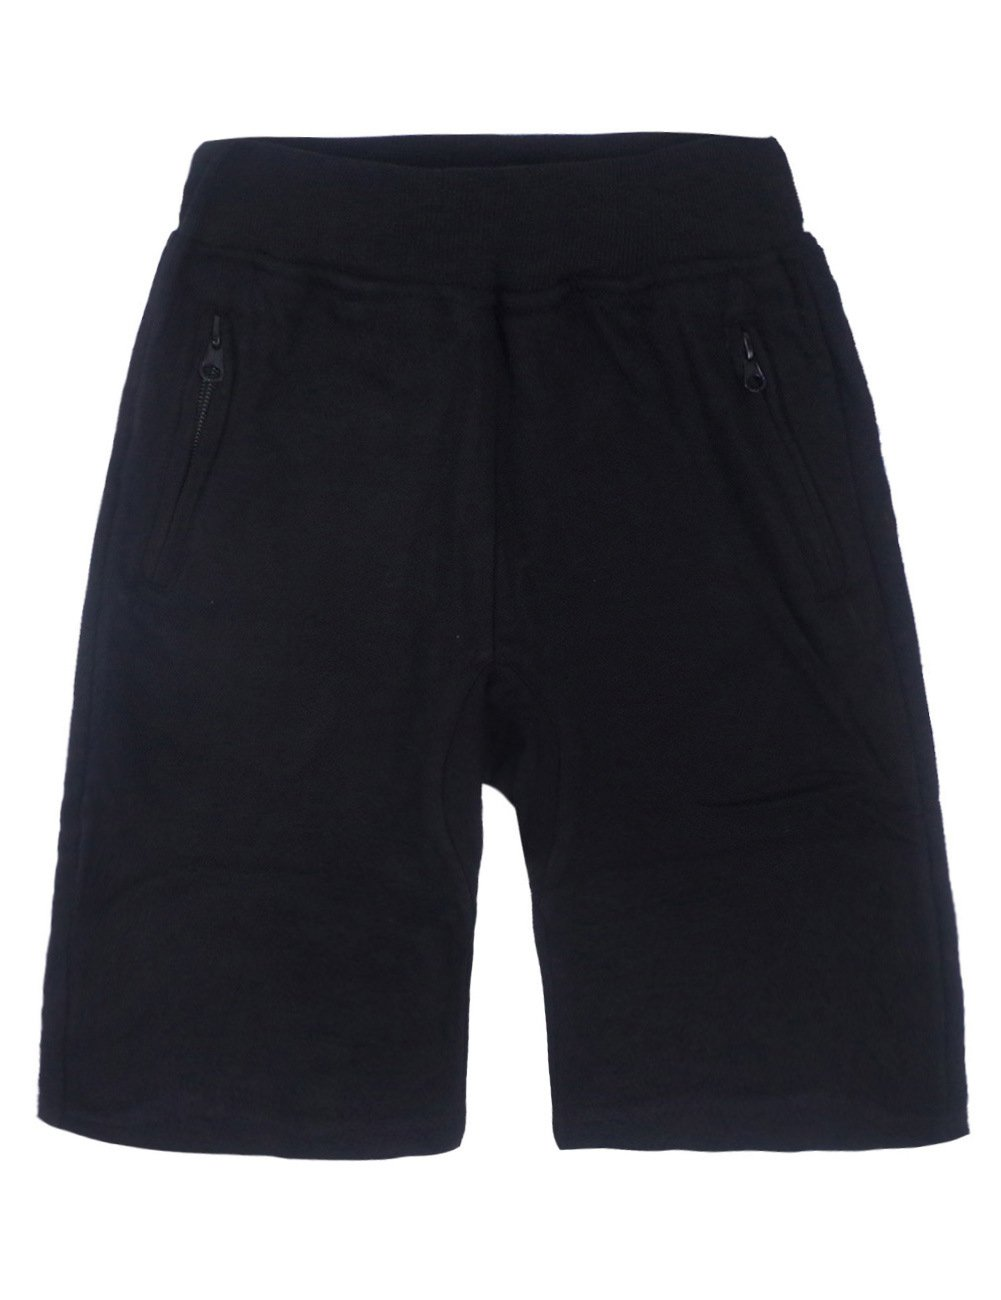 Spring&Gege Boys' Pull On Soft Solid Basic French Terry Sport Shorts, 5-6 Years, Black